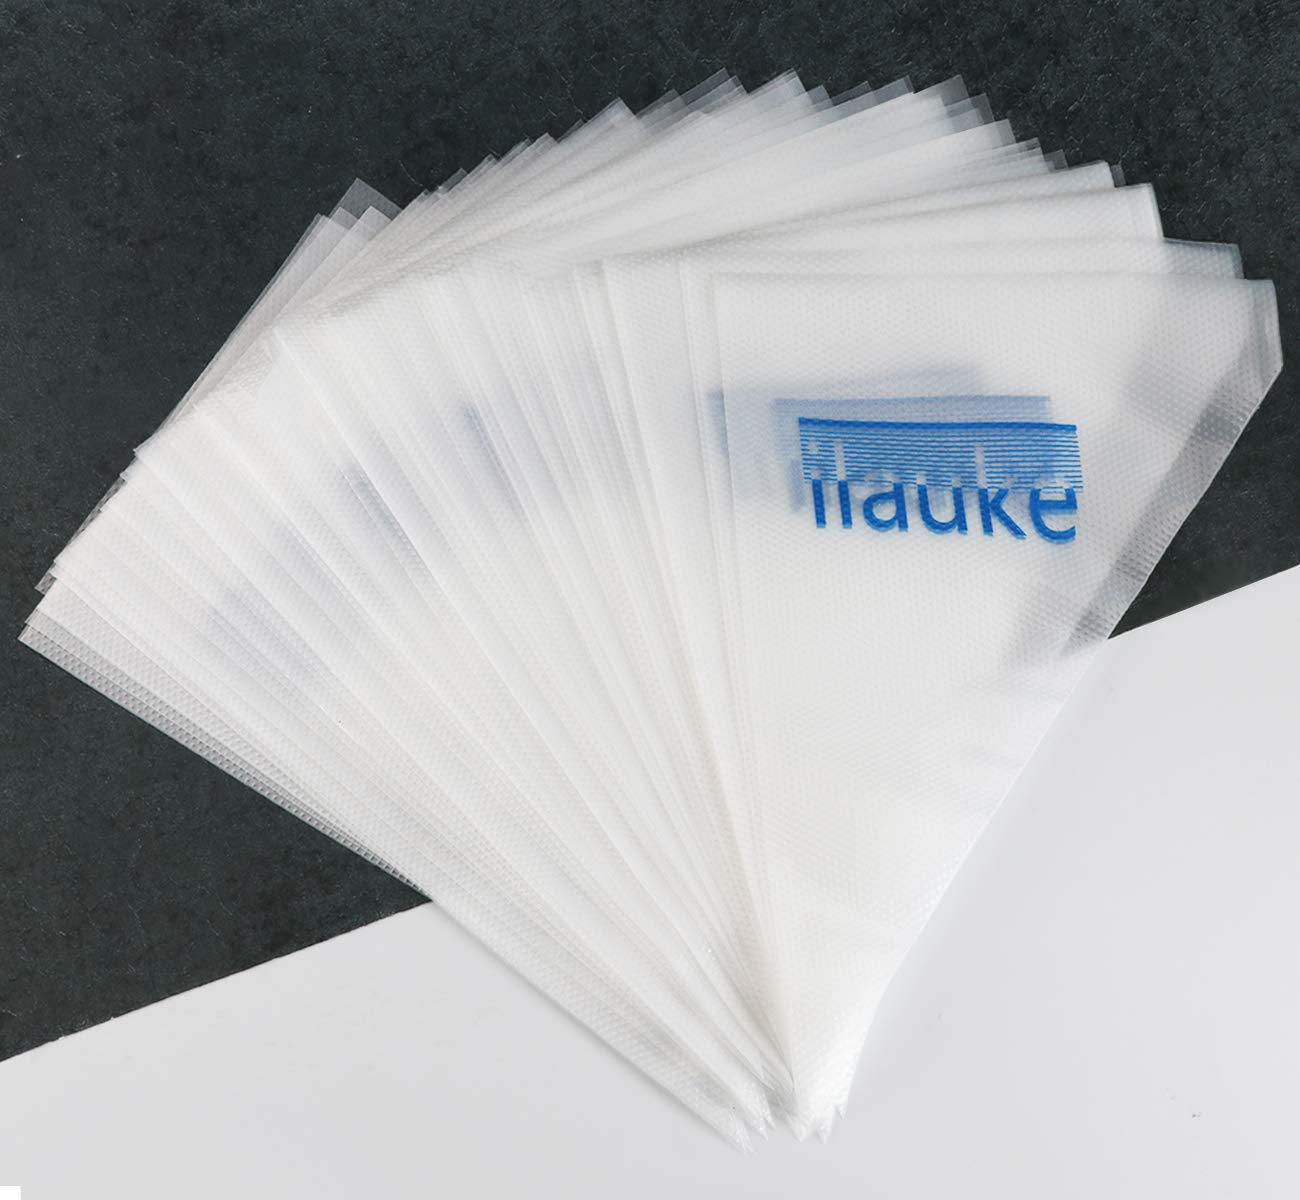 ilauke 200PCS Disposable Pastry Bags Extra Thick Icing Piping Bags [15-Inch] for Baking Supplies,Cupcakes,DIY Cake Decoration Supplies IKL-200 KIT